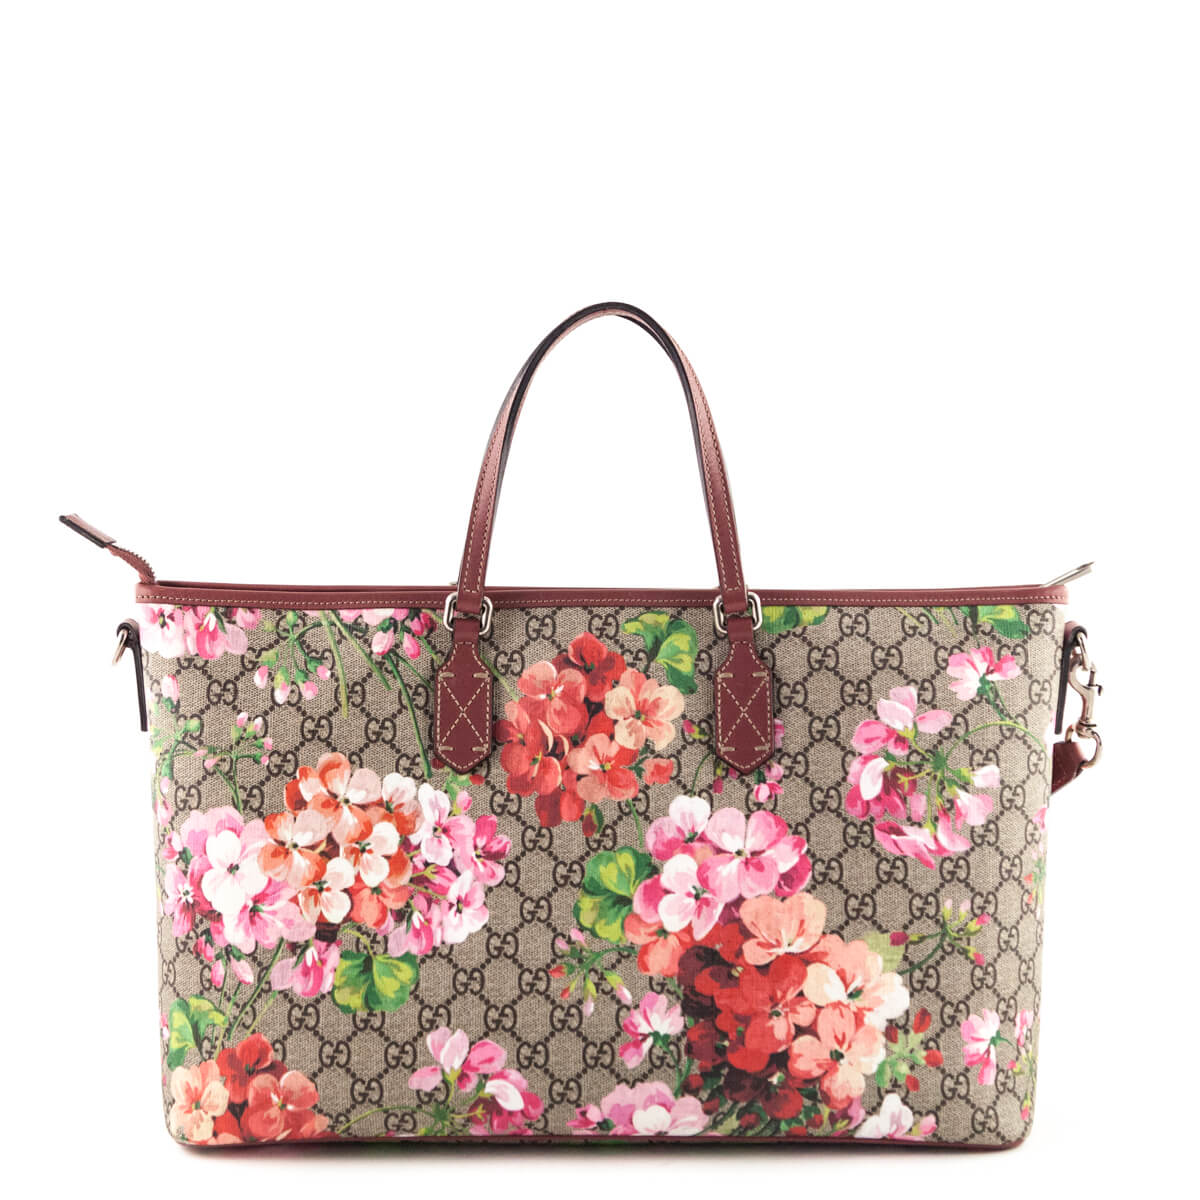 4608d3ec7 ... Gucci Antique Rose Monogram Soft GG Blooms Tote - LOVE that BAG -  Preowned Authentic Designer ...